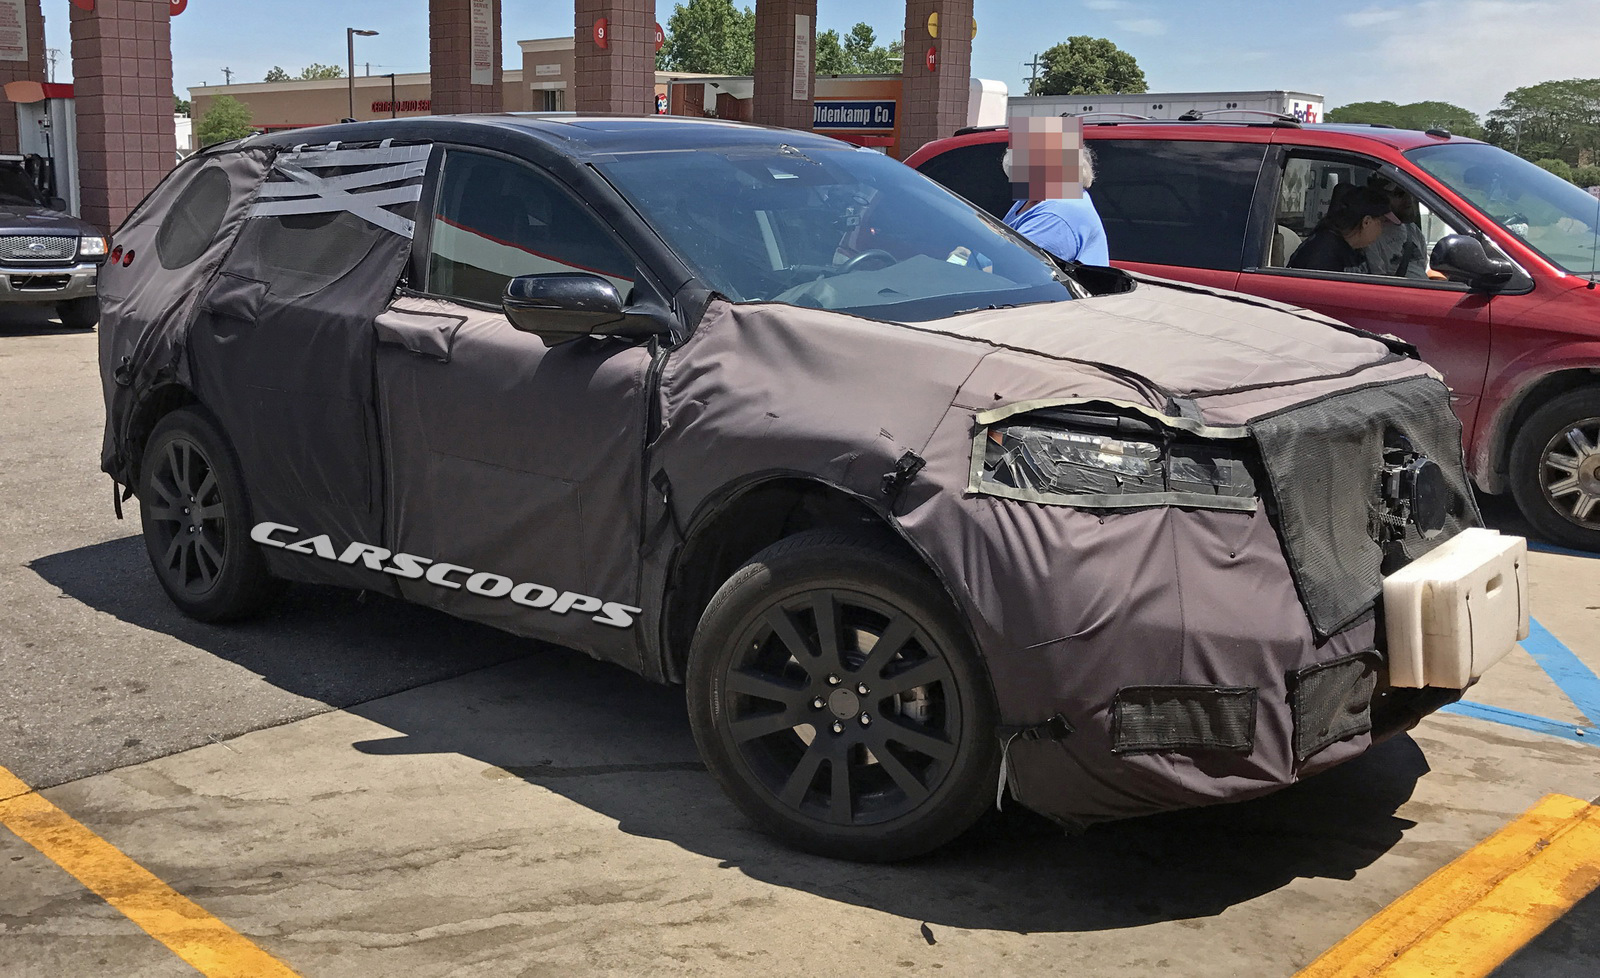 Spied: New 2019 Acura RDX To Ditch V6 For 2.0L Turbo-Four